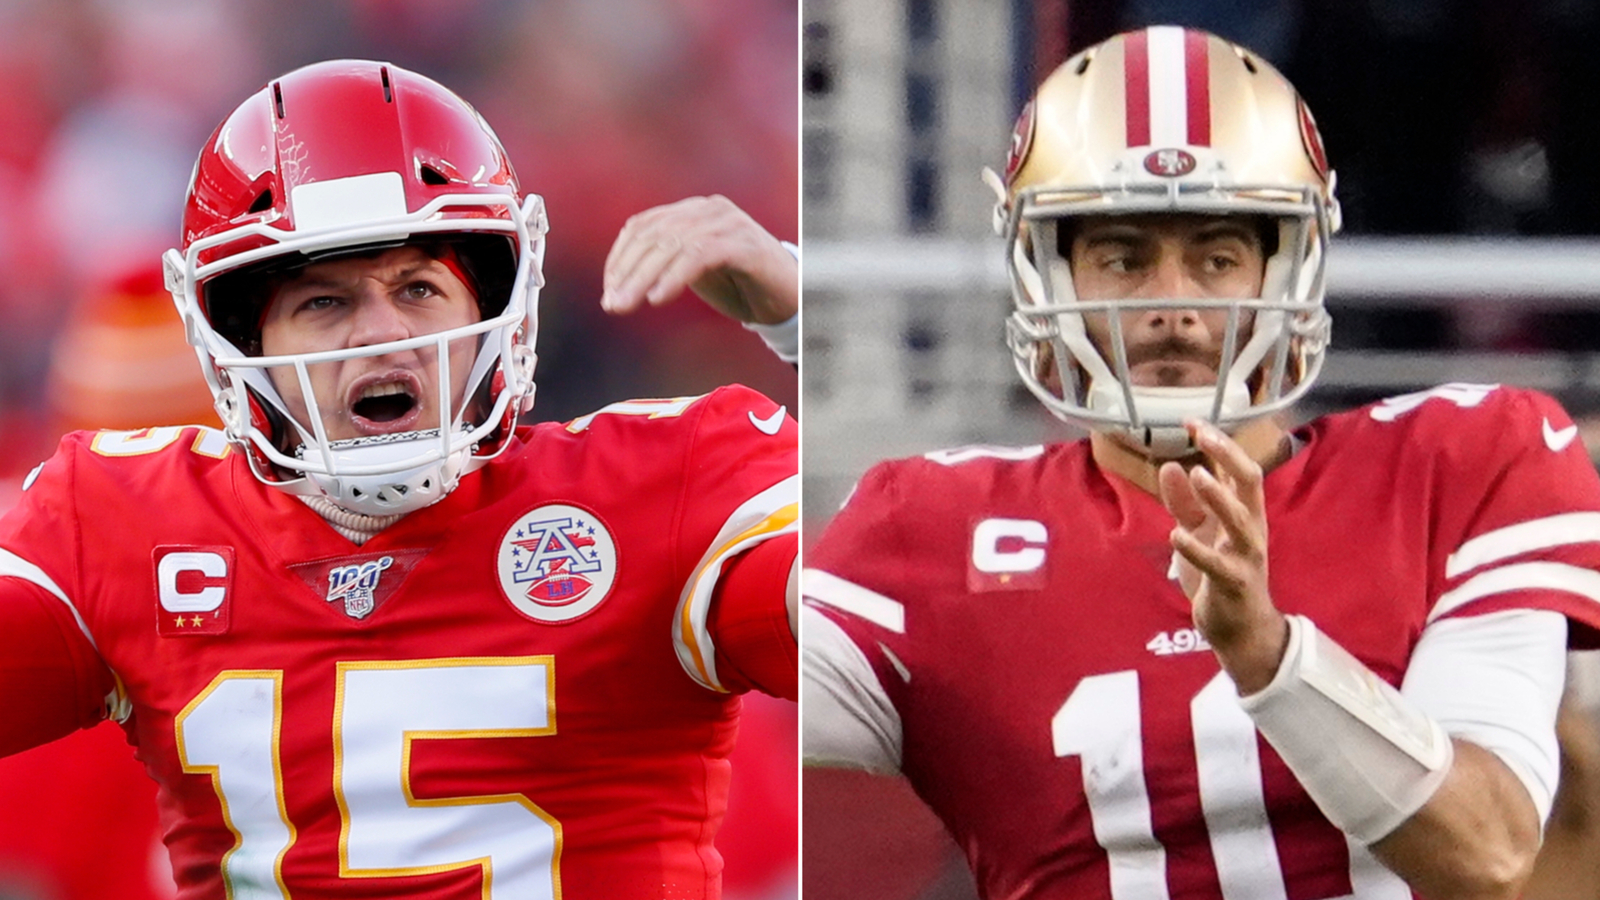 Kansas City Chiefs will play San Francisco 49ers in Super Bowl LIV